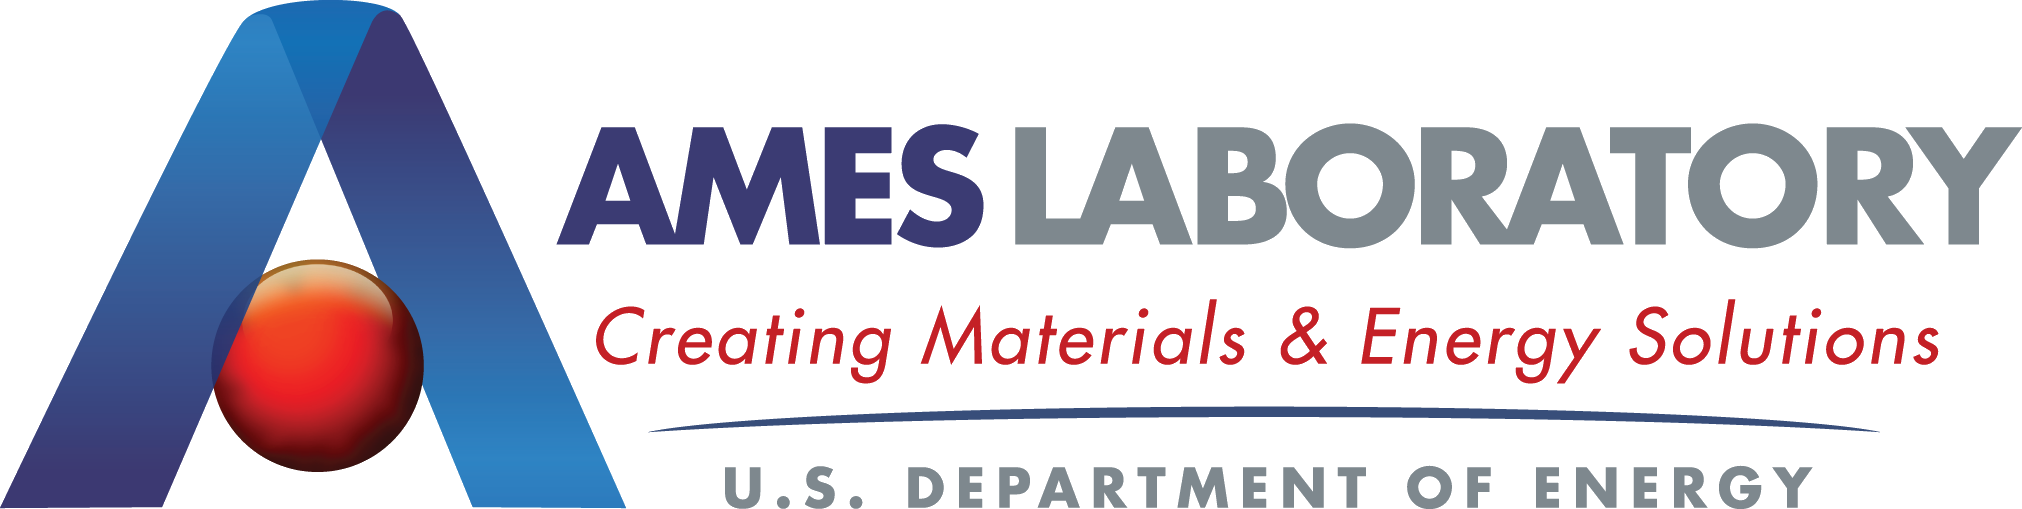 AMES Laboratory.png